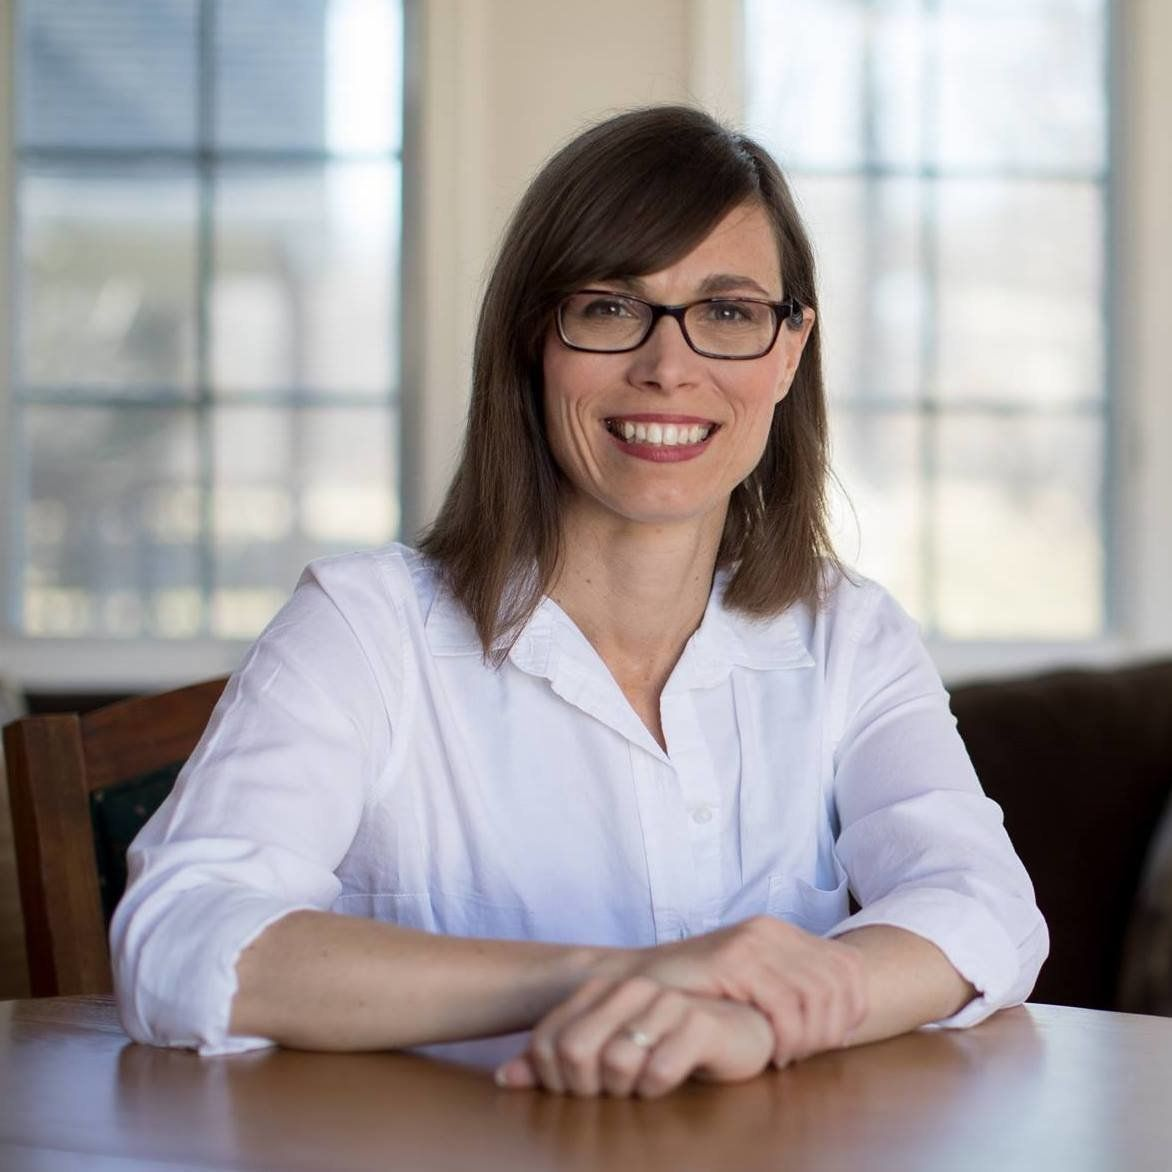 Democrat Liz Watson, a progressive labor attorney, will challenge GOP Rep. Trey Hollingsworth, a freshman, in Indiana's